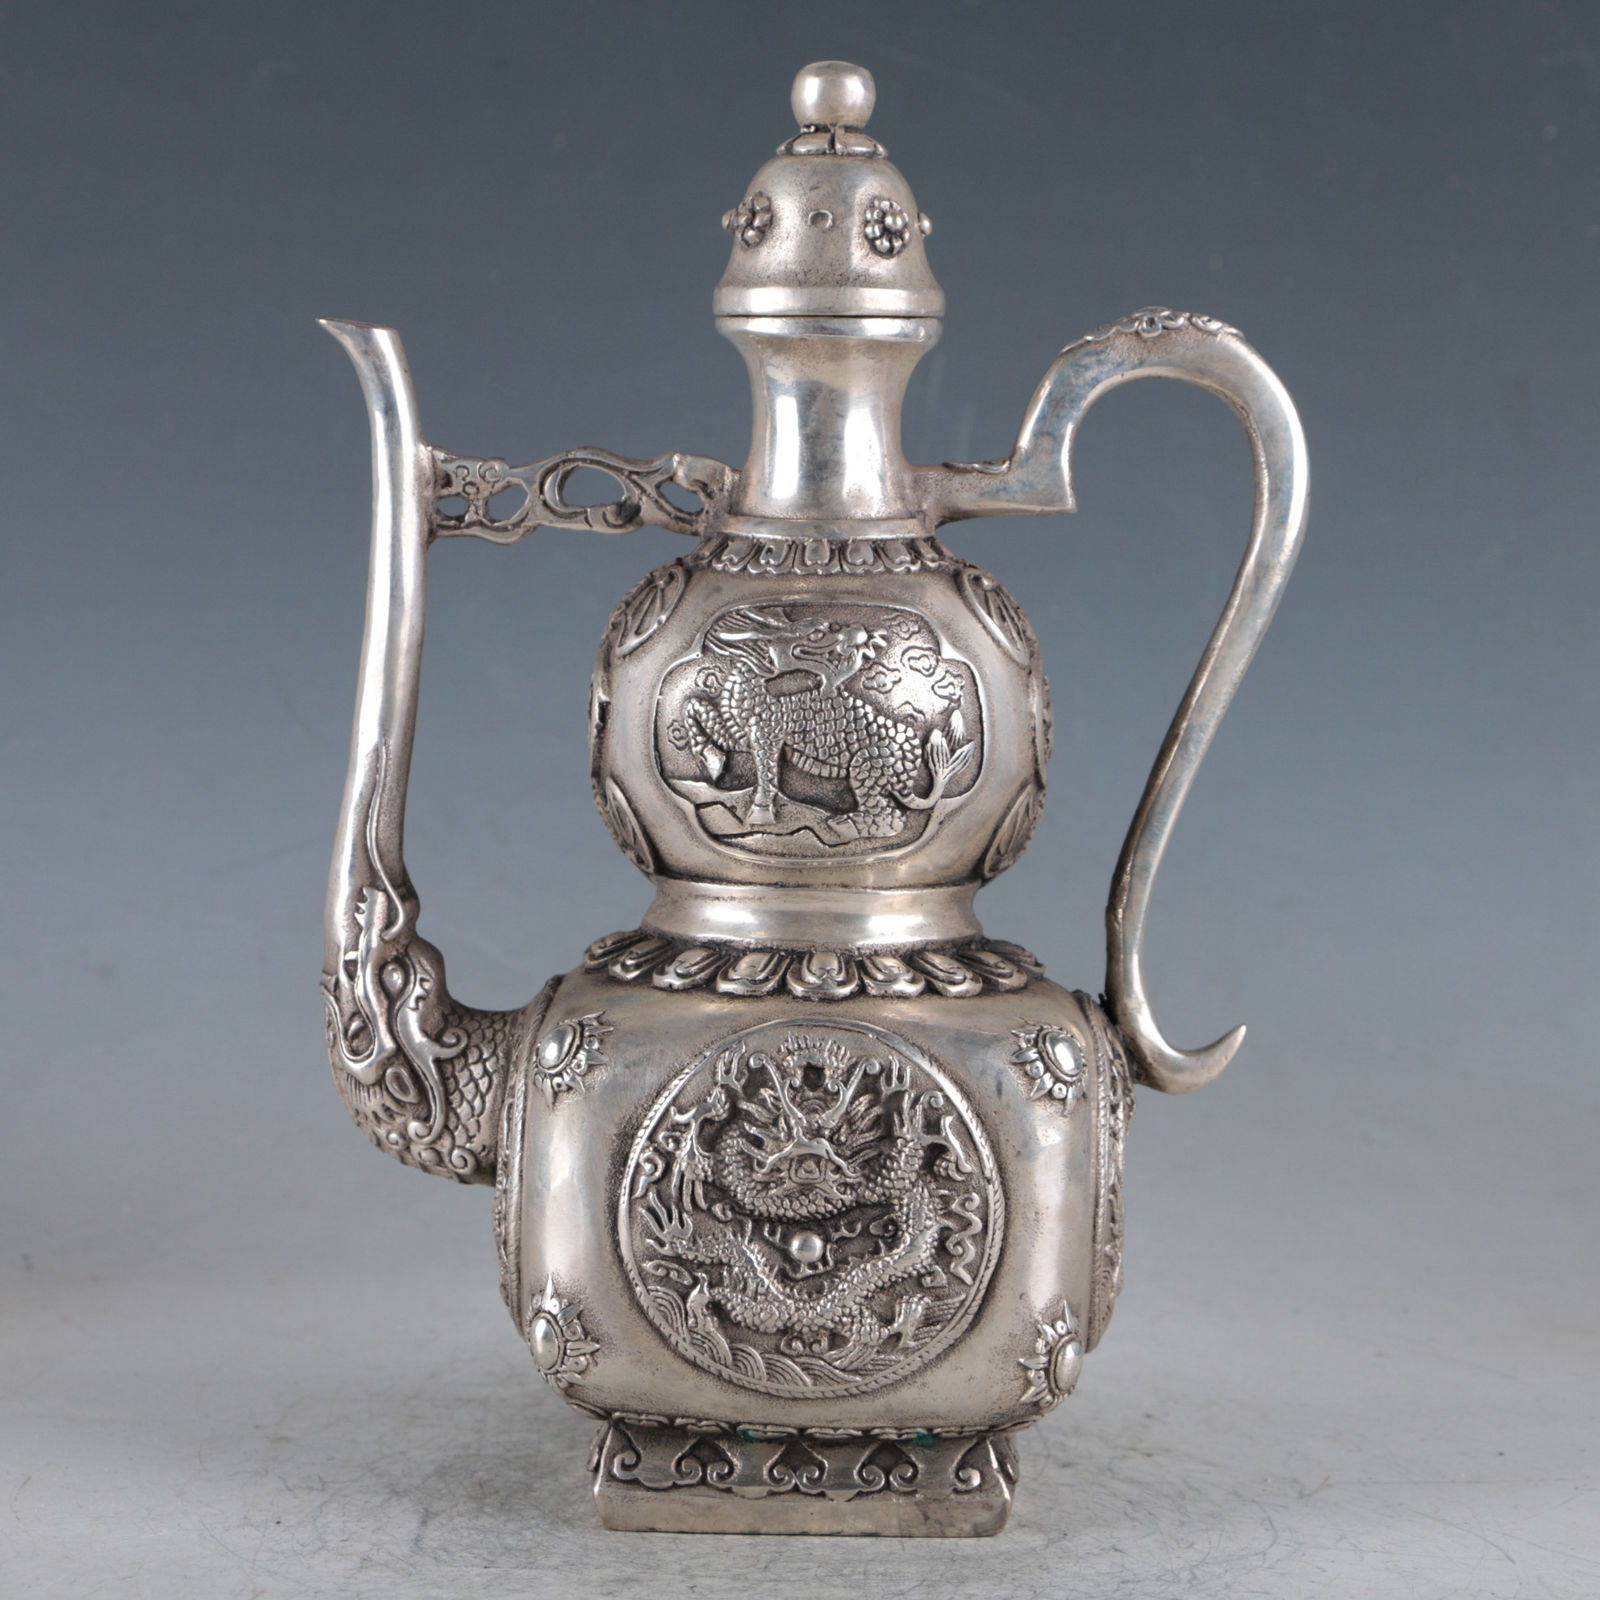 Chinese Silvering Copper Dragon Teapot Made During The Da Ming XuandeChinese Silvering Copper Dragon Teapot Made During The Da Ming Xuande